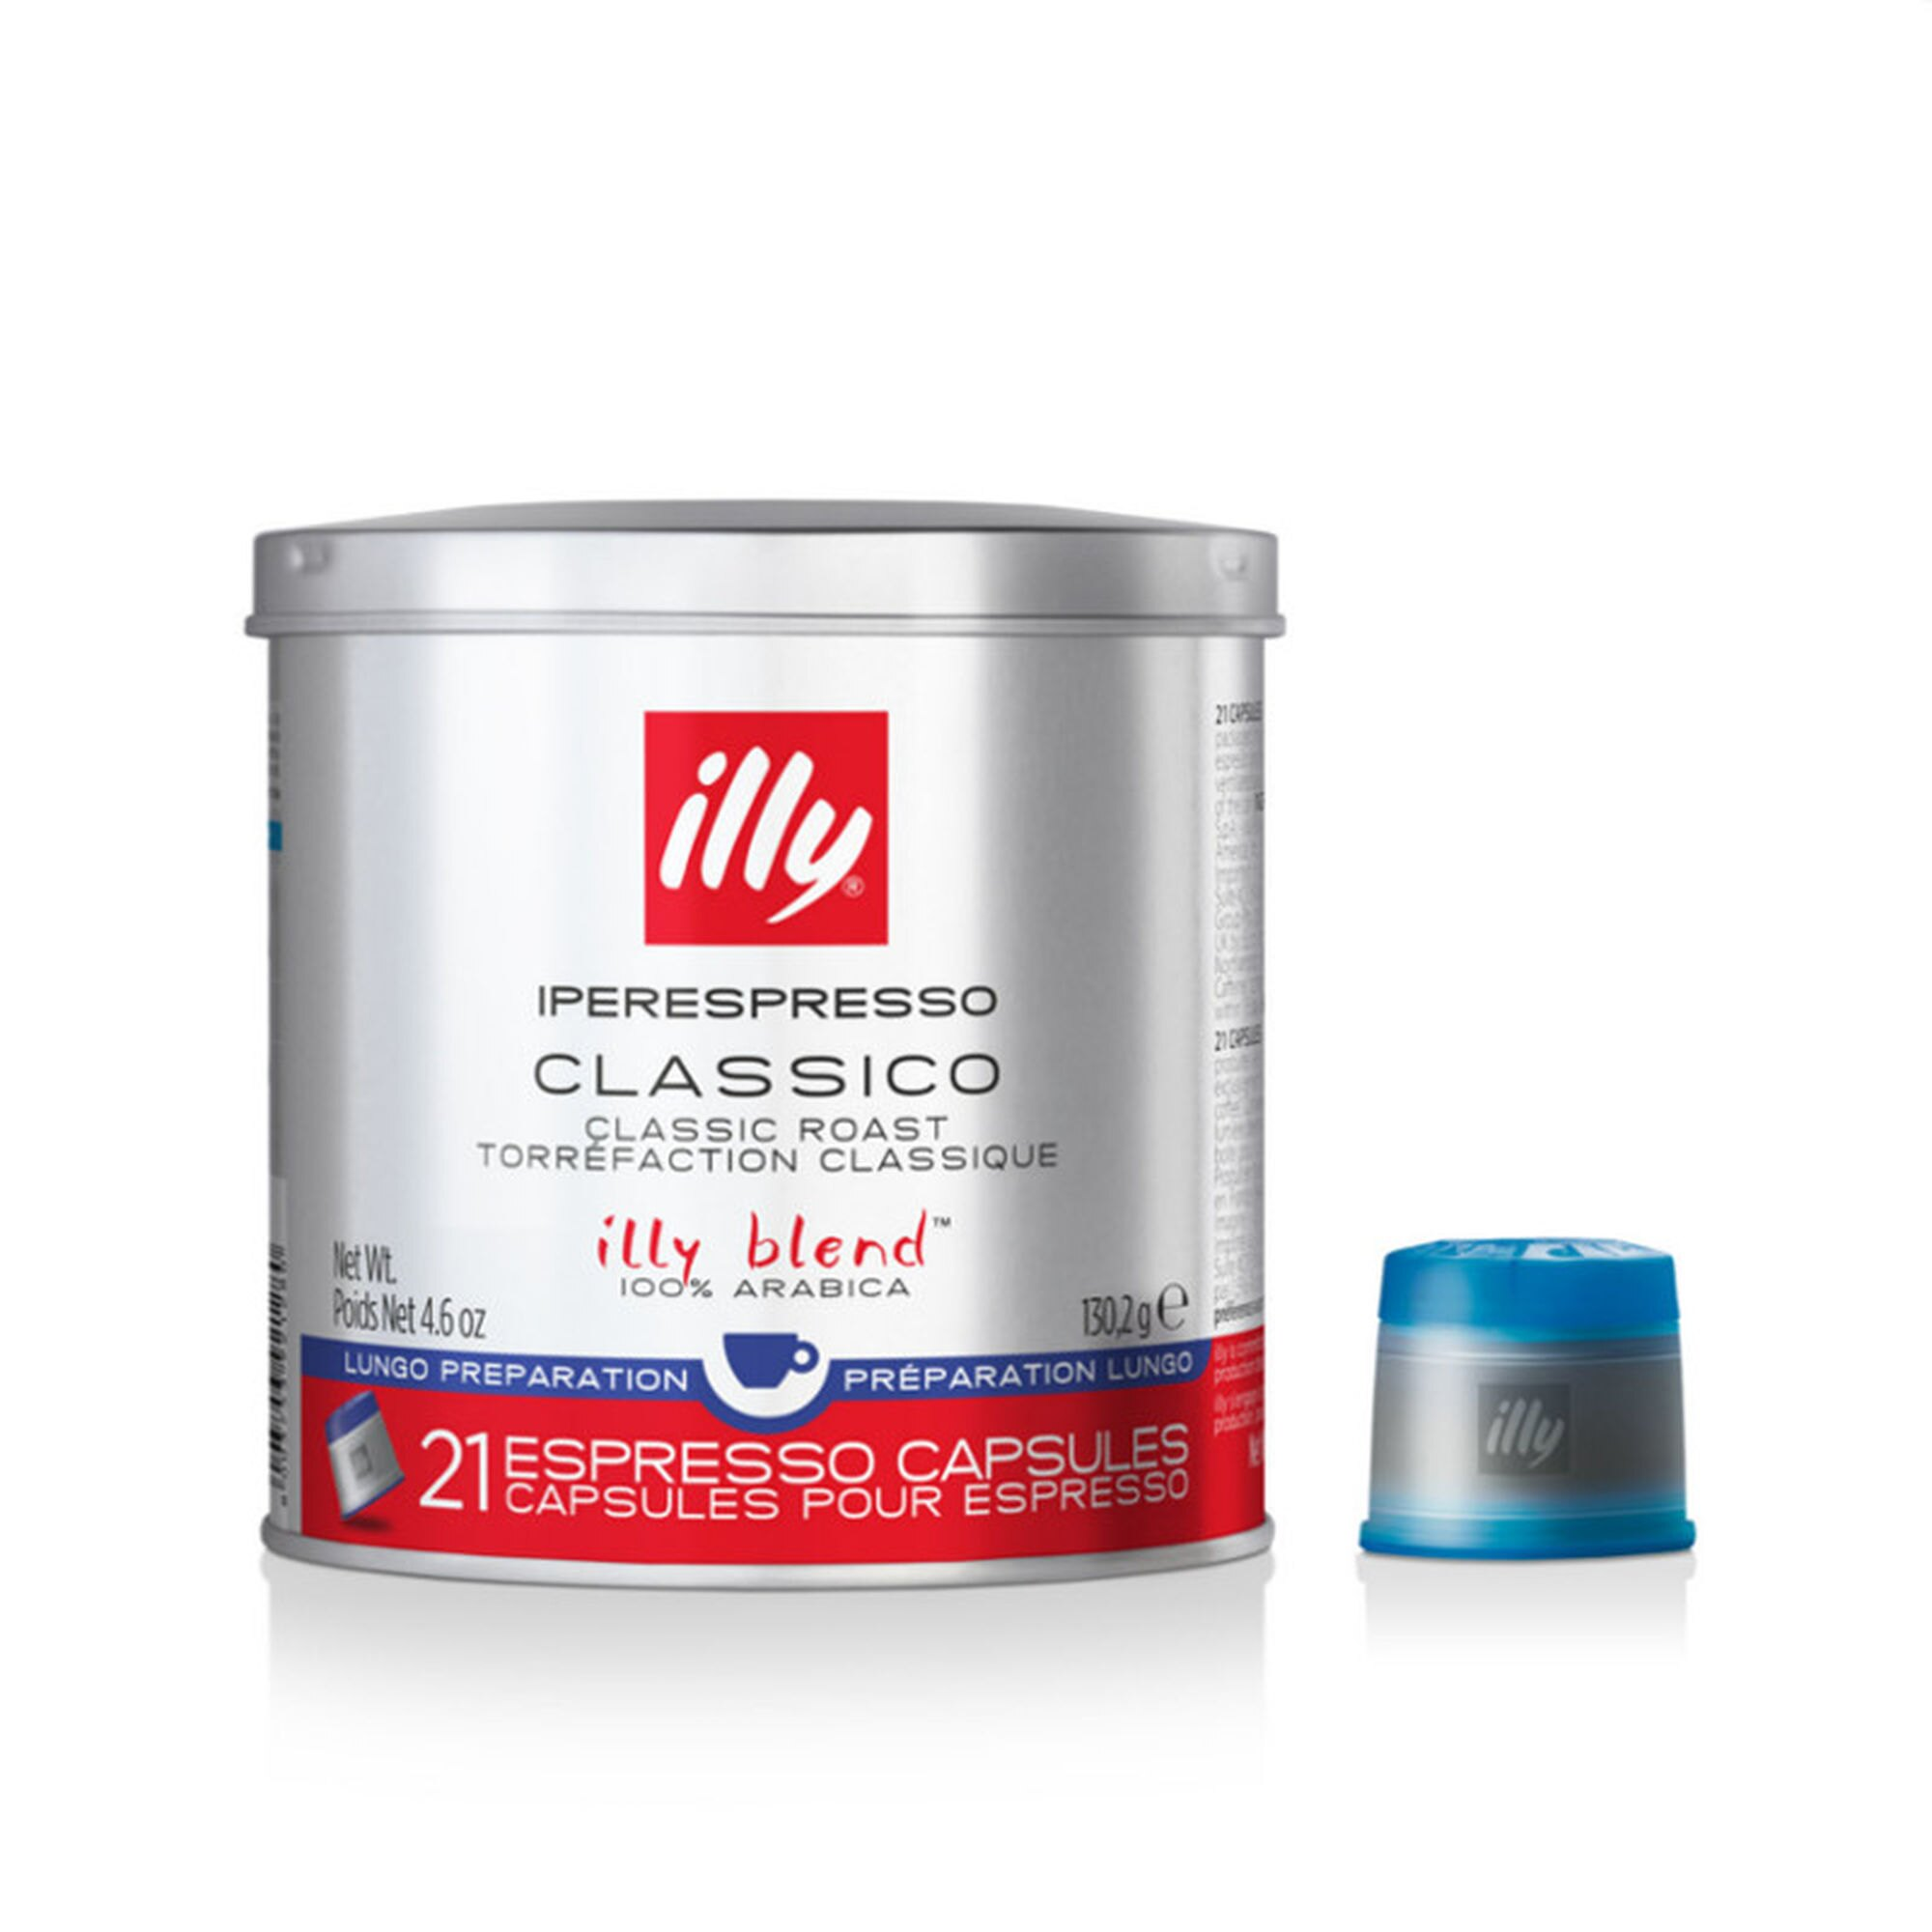 Illy Iperespresso Lung capsule 21 buc